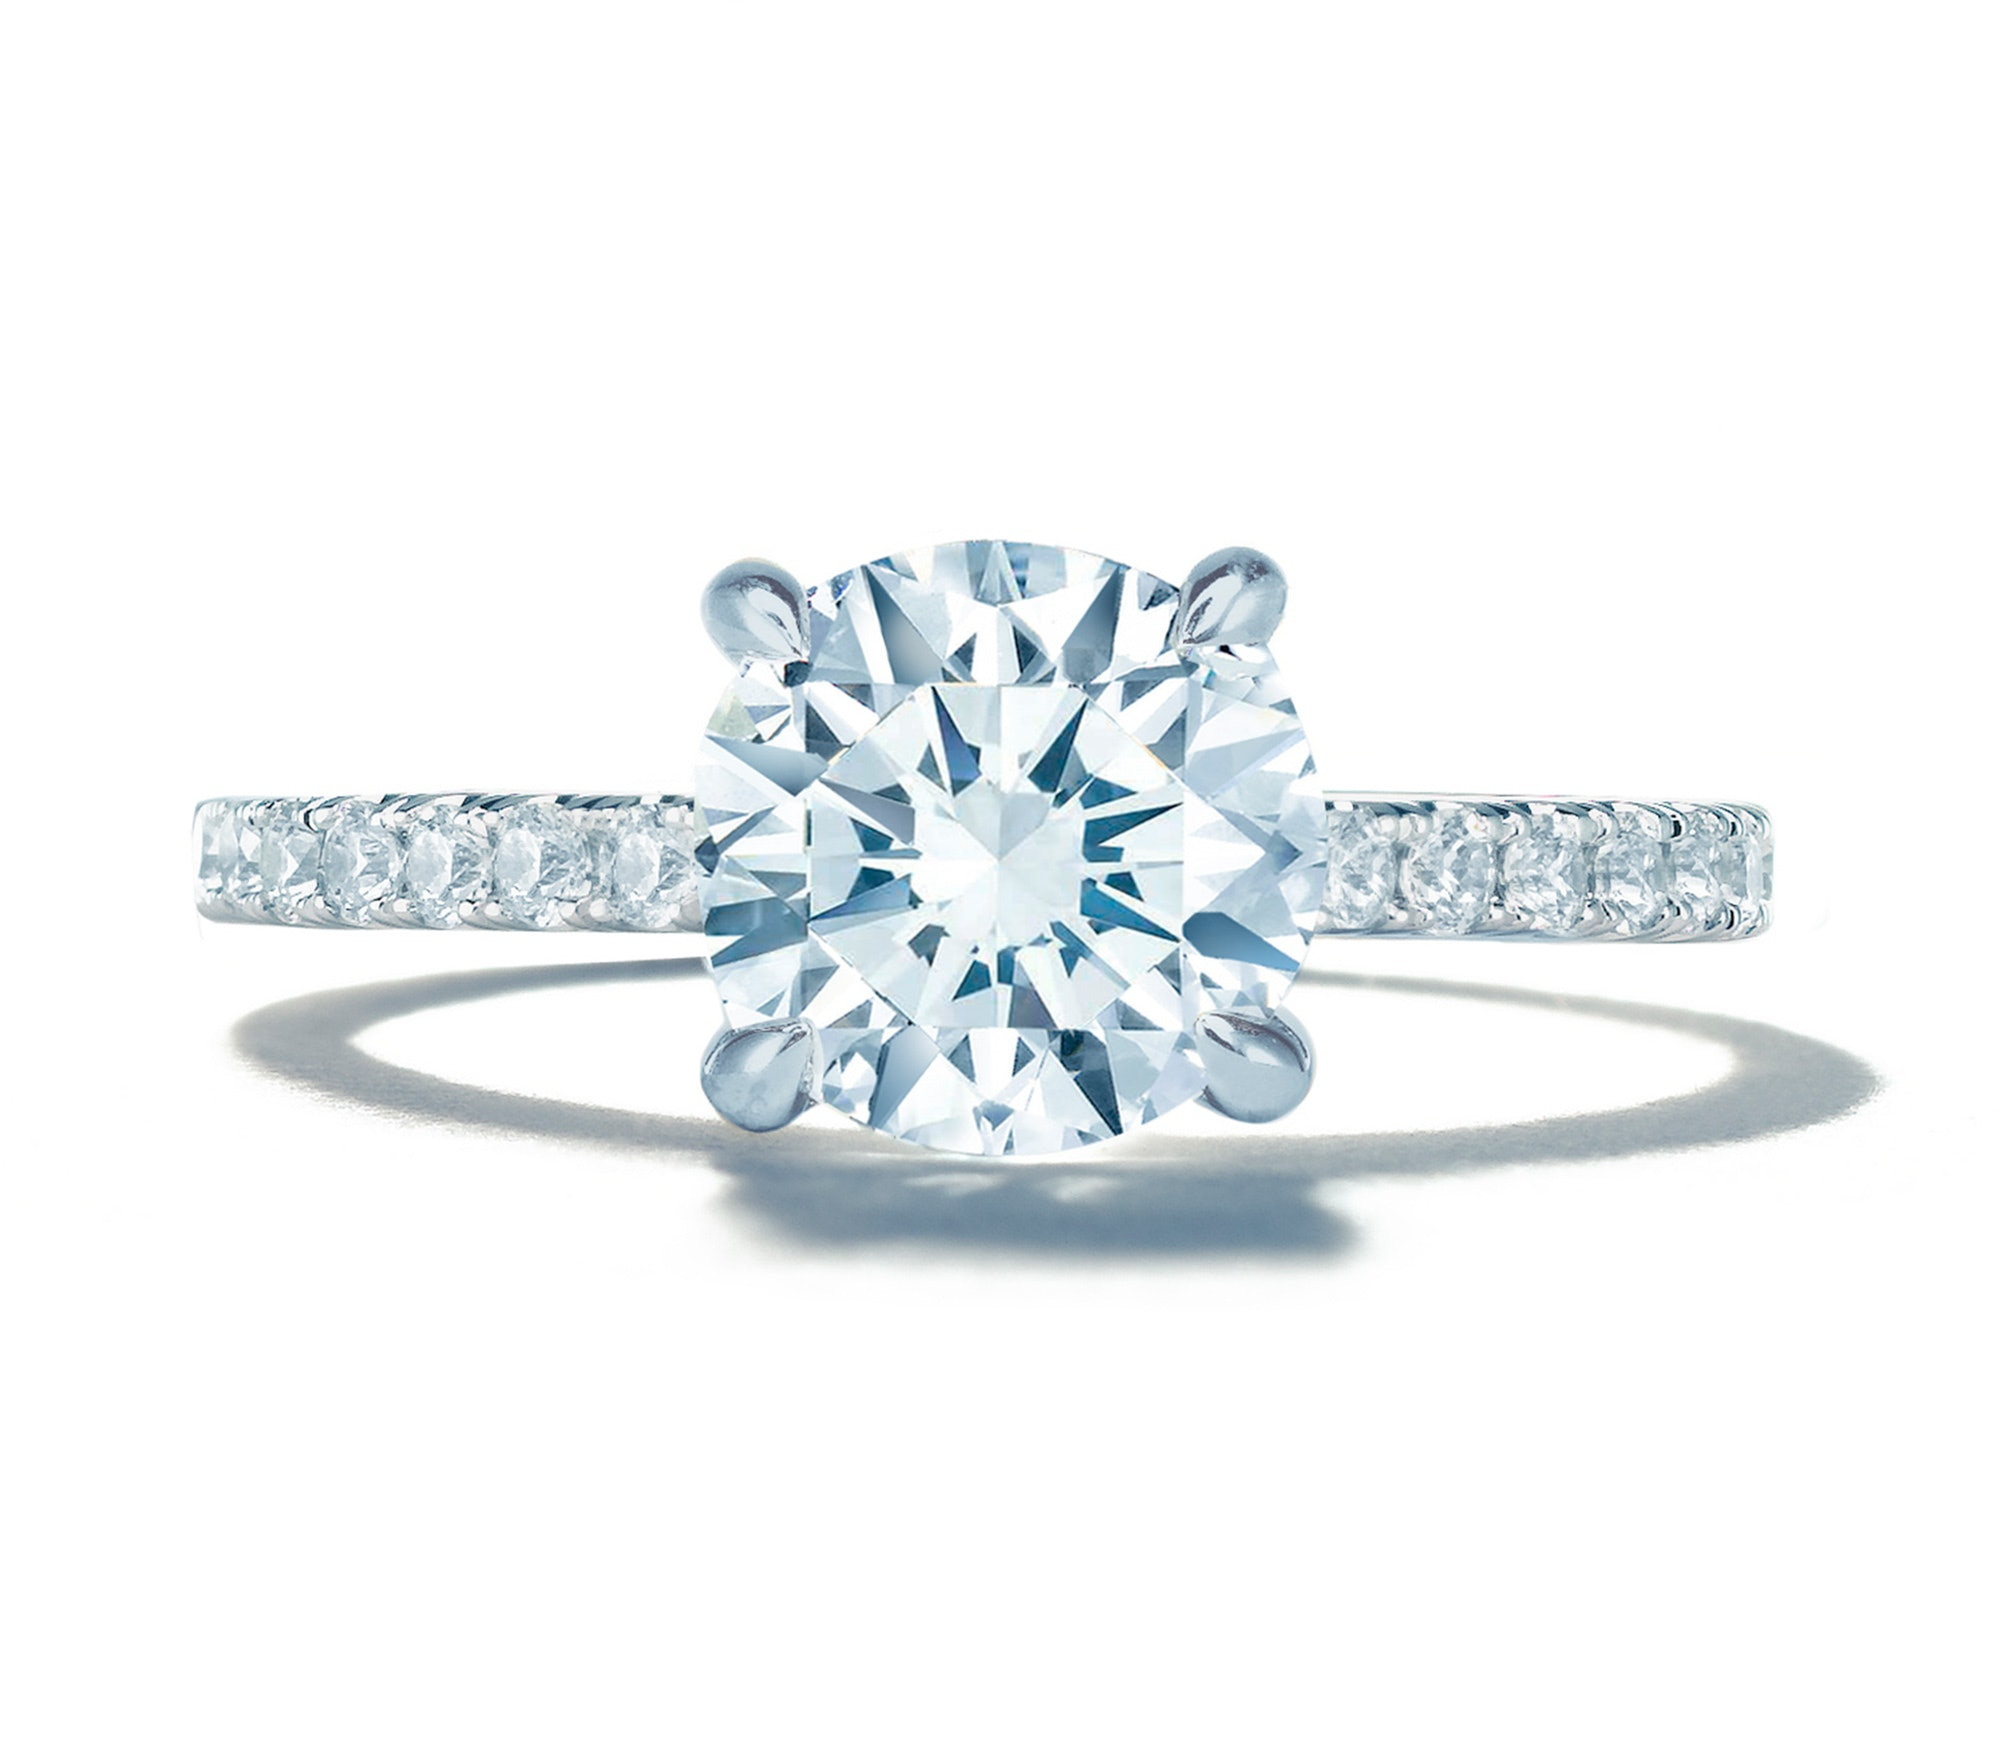 four a si rings engagement cut set h white g ring teal with platinum single brilliant claw diamond